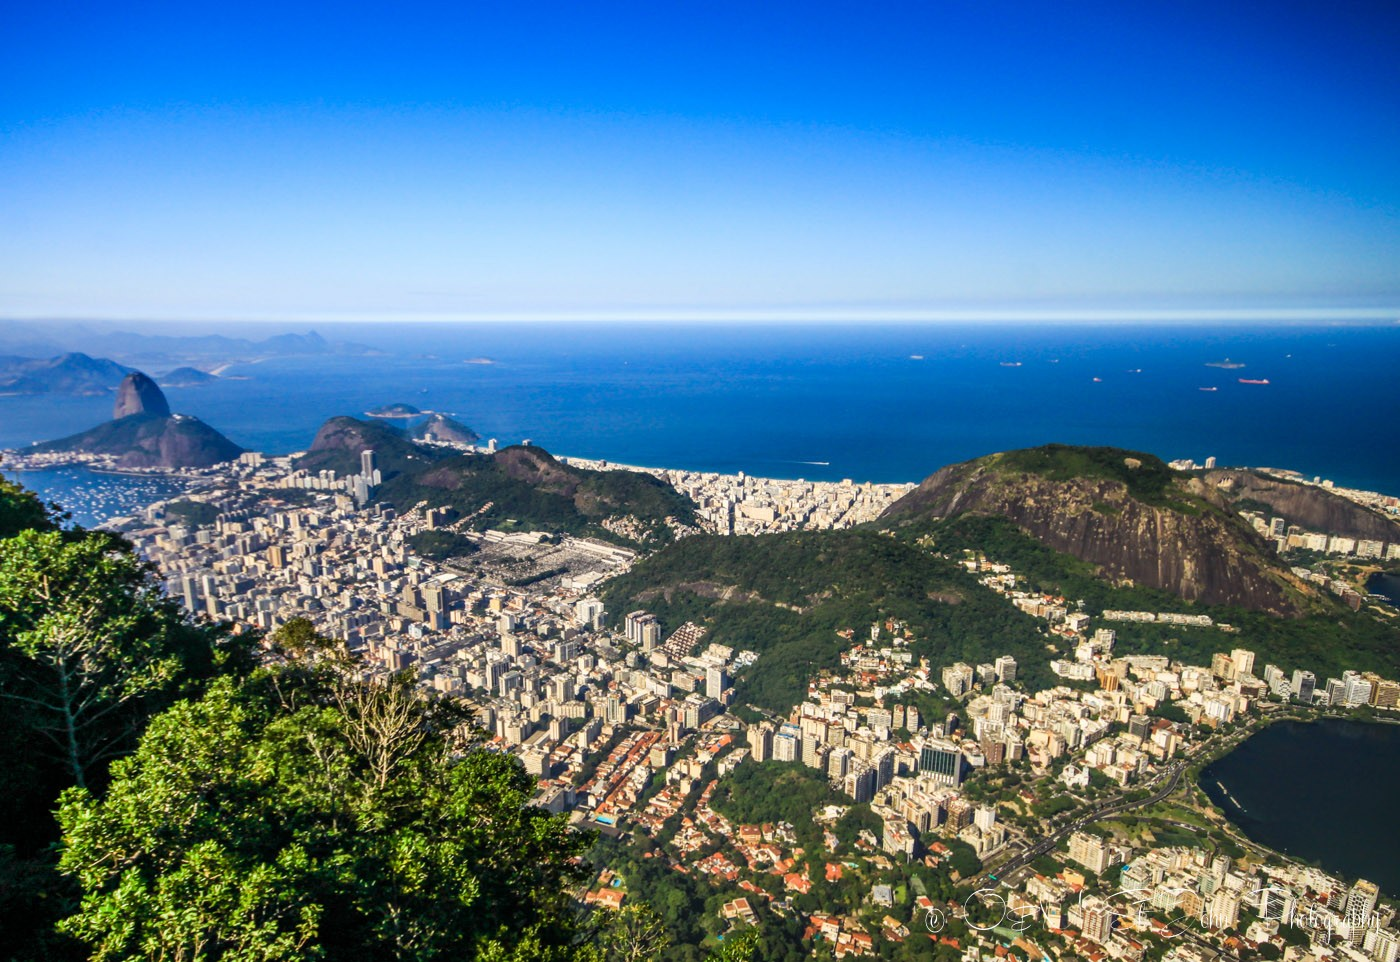 Hike to Christ the redeemer: View from the top of Corcovado Mountain, Rio de Janeiro, Brazil